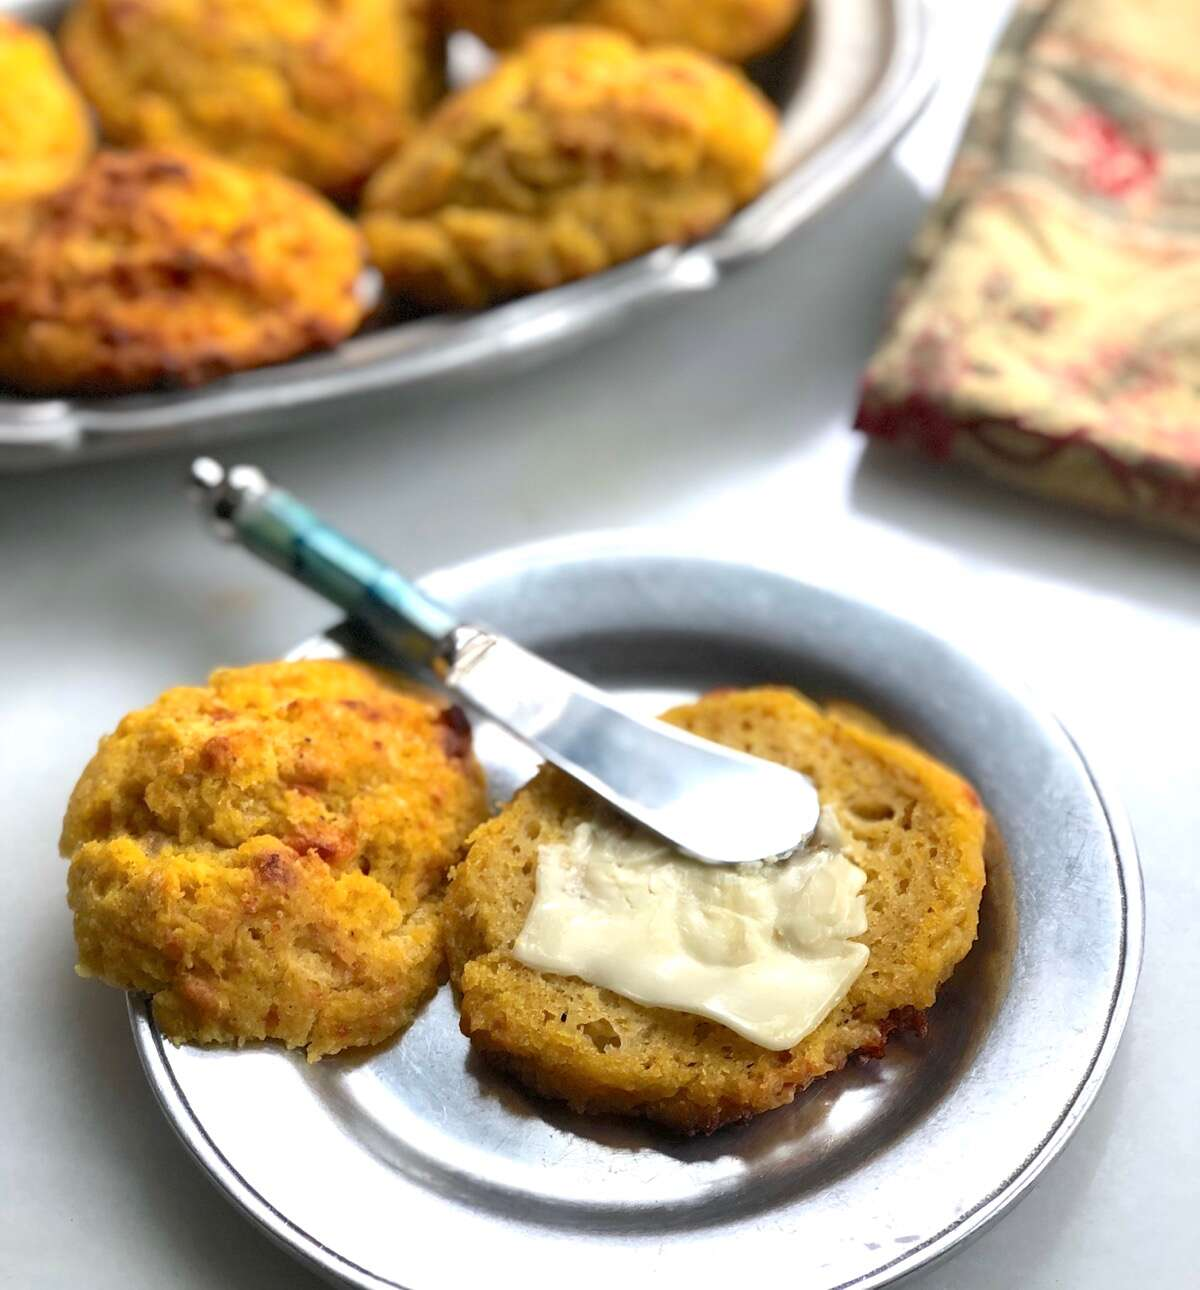 Pumpkin cheddar biscuit on a plate, spread with soft butter, more biscuits in the background.